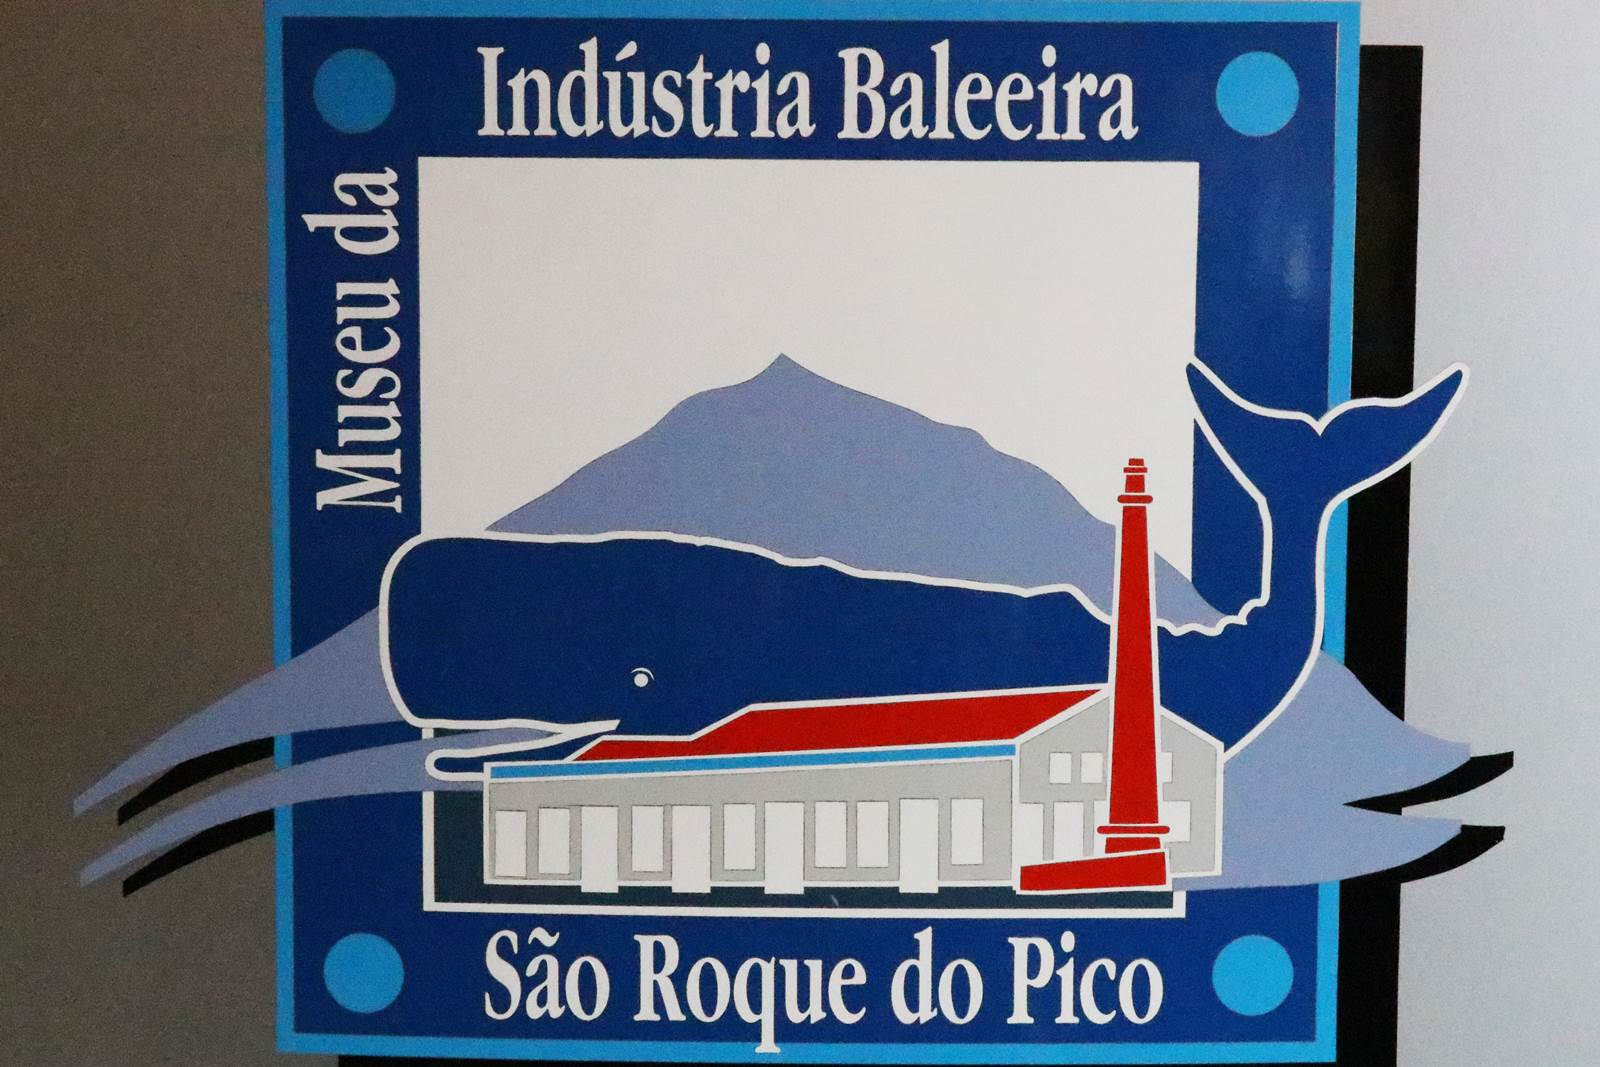 Sao Roque do Pico